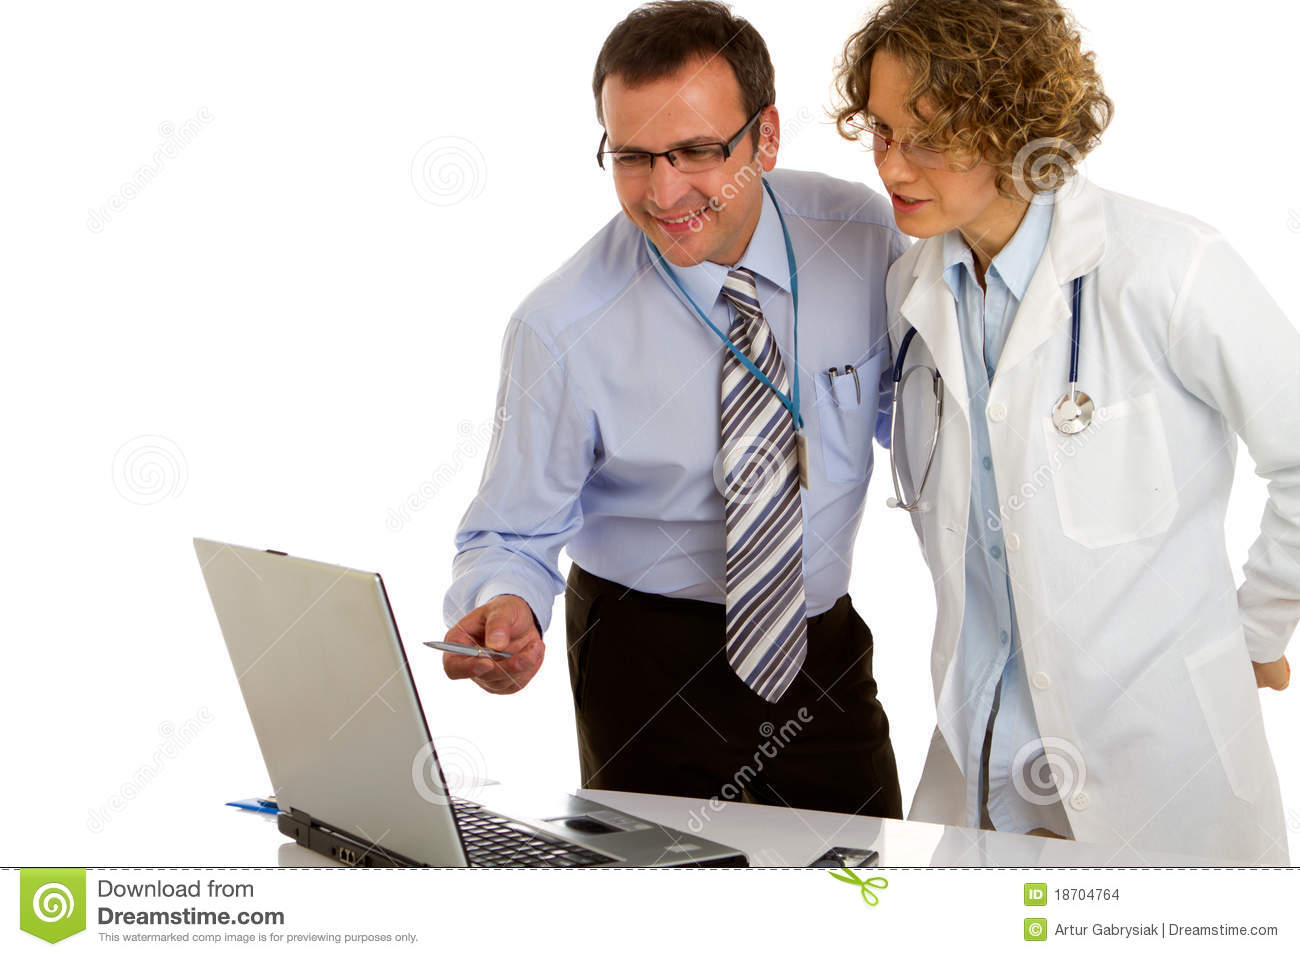 Doctors analyze the business plan - doctors at work.